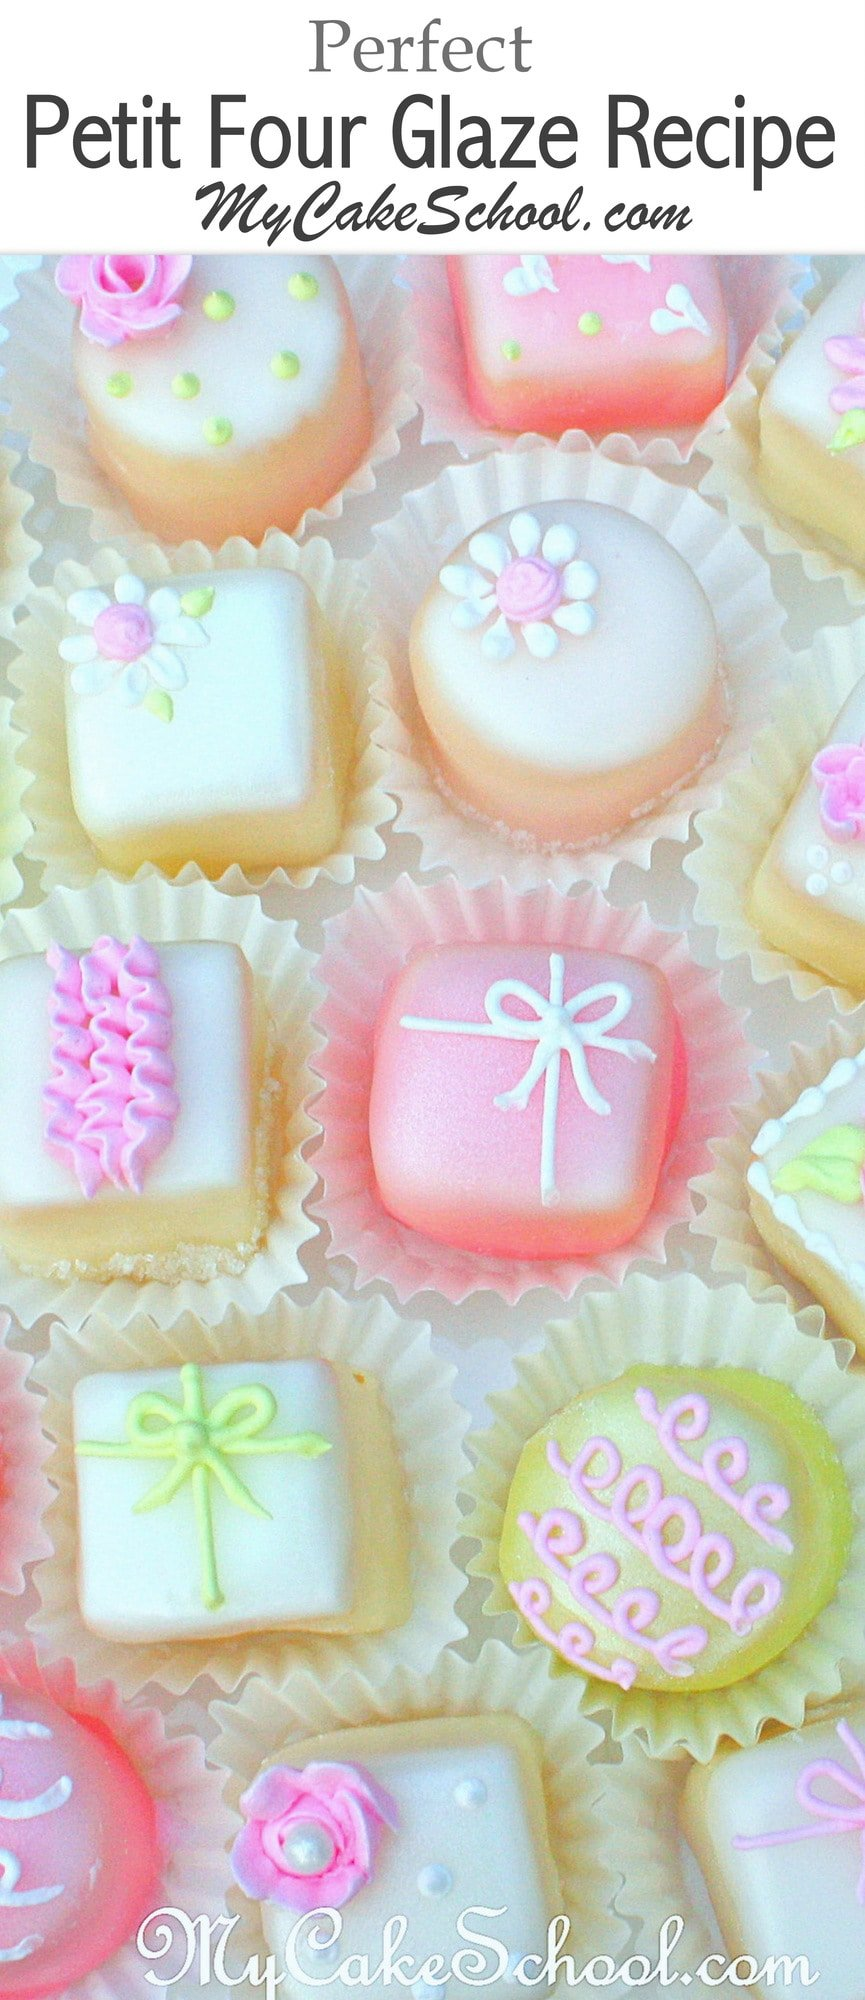 We LOVE this classic Petit Four Glaze Recipe! So simple to make and easy to work with! MyCakeSchool.com